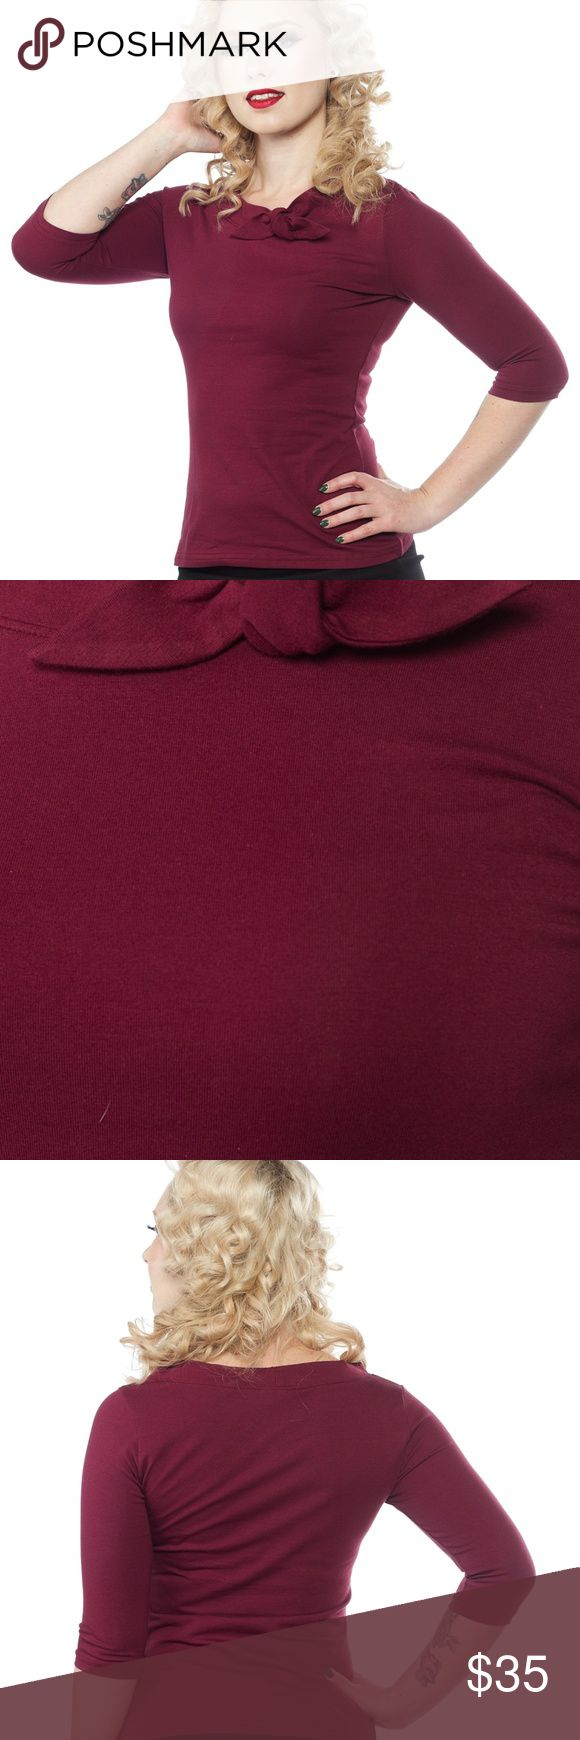 """Heart of Haute Burgundy Top Rockabilly PinUp 1X This is BRAND NEW! By Heart of Haute (Their Mandi Bee line) in a size 1X.  DETAILS:  This adorable, versatile top is necessary in every gal's wardrobe. It's a lovely burgundy color and has 3/4 sleeves with a square knot collar. It's the perfect piece to match with any skirt for a vintage pinup look. Made in the USA ADDITIONAL INFORMATION:  97% Cotton / 3% Lycra Machine wash cold Tumble dry low  Bust:42-50 Waist:38-46 Hips:44-54 Length:24"""" Heart…"""